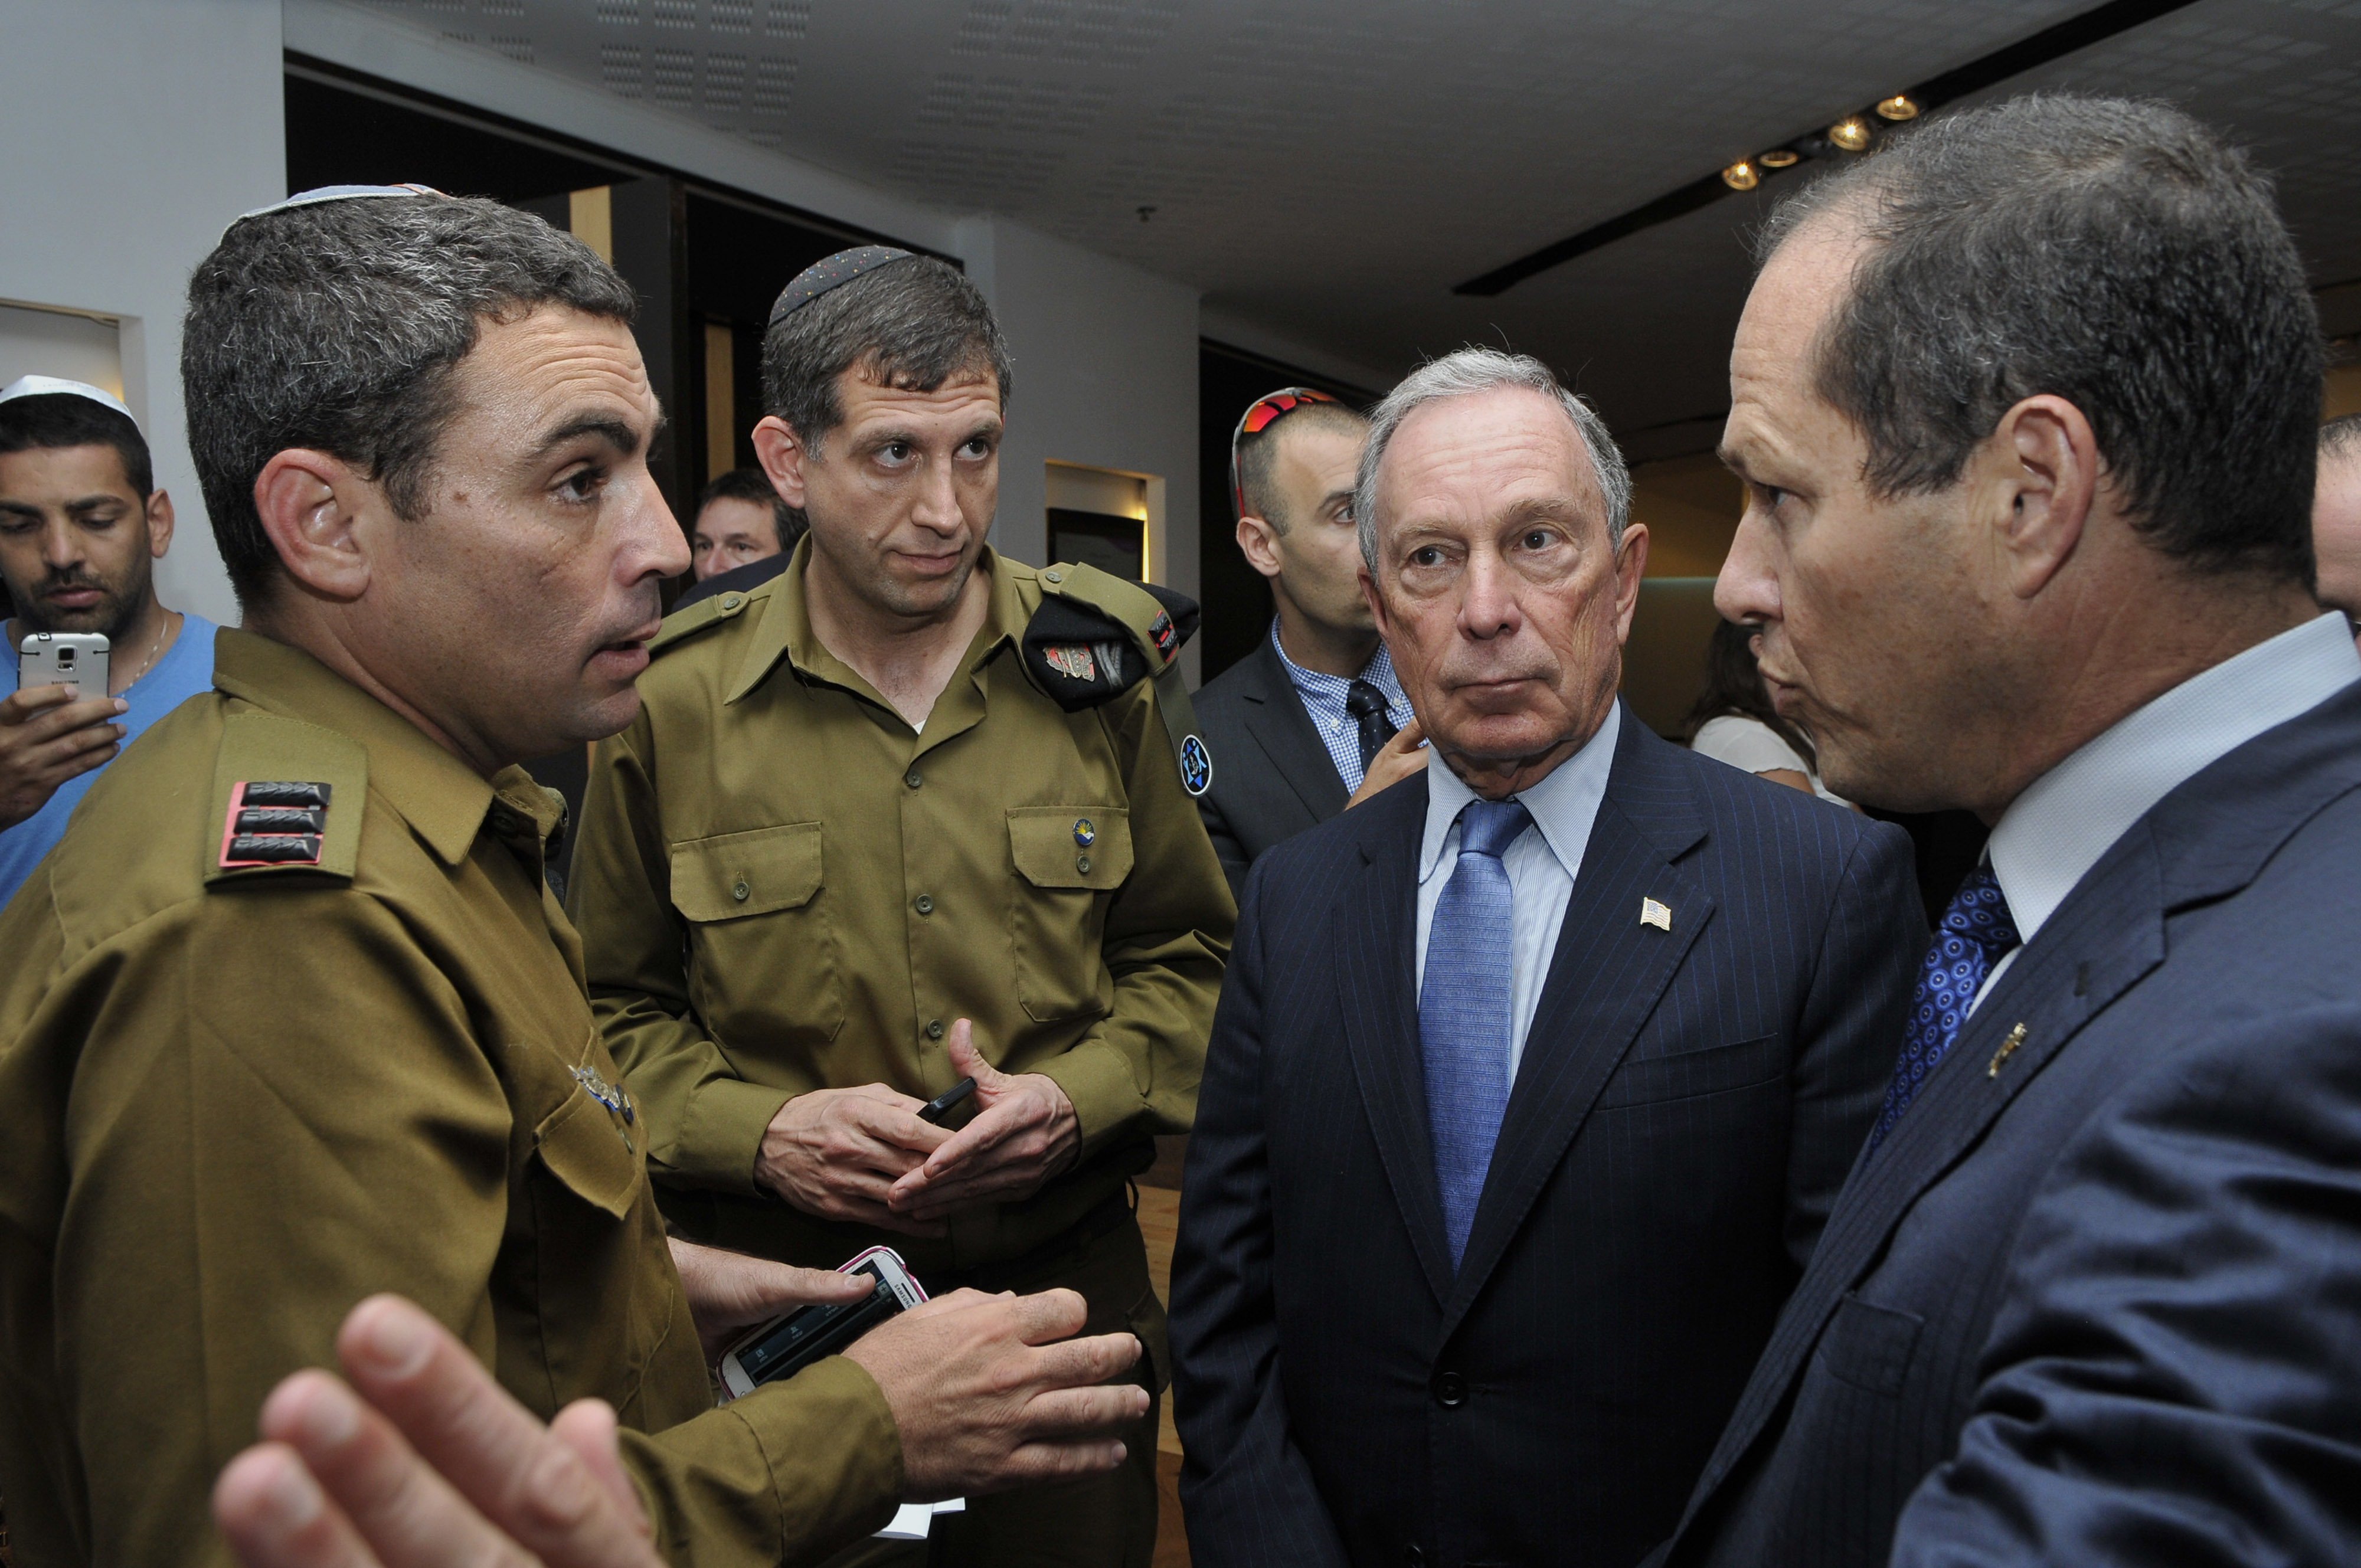 Mike Bloomberg, majority shareholder of Bloomberg LP and former New York mayor, second right, and Nir Barkat, mayor of Jerusalem, right, speak with member of the Israeli Defense Forces (IDF) in Jerusalem, Israel, on Wednesday, July 23, 2014.